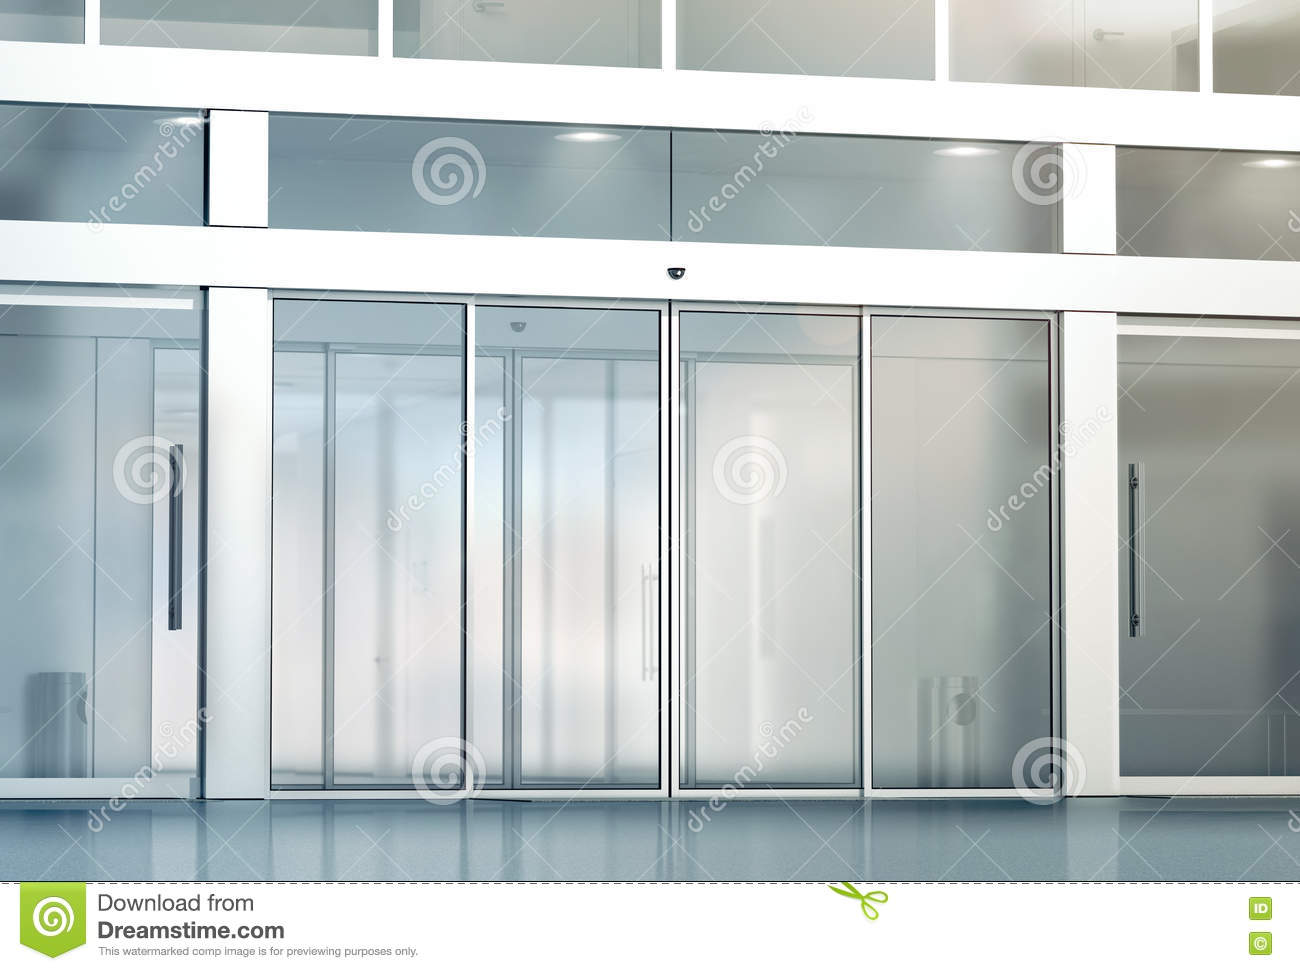 Blank sliding glass doors entrance mockup stock photo for Office glass door entrance designs